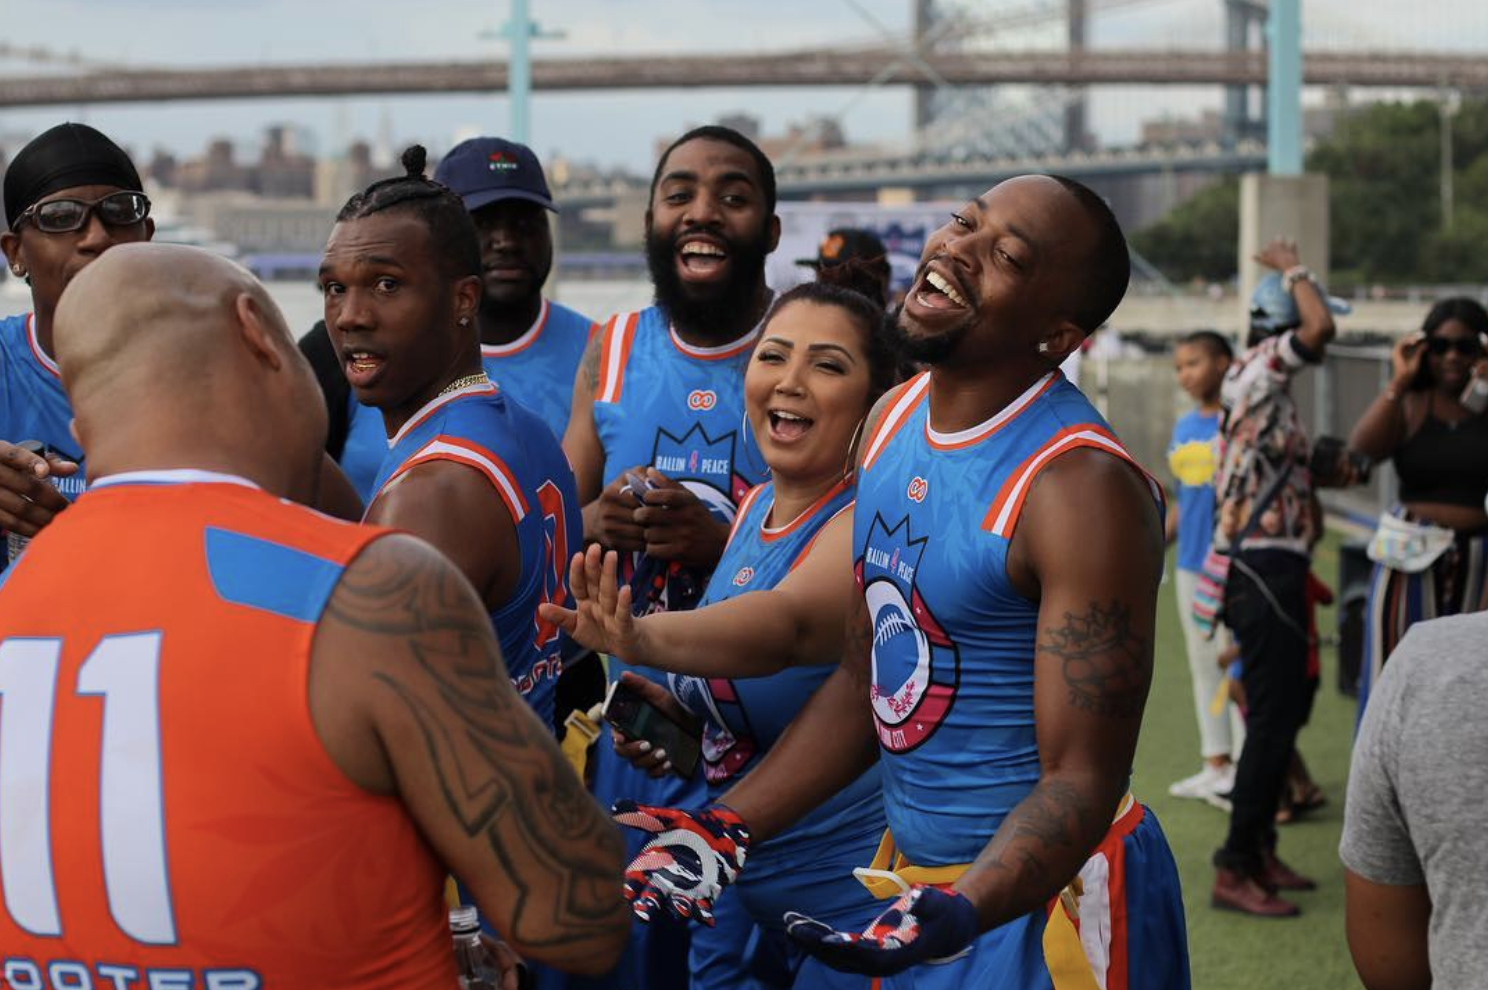 """Peep The Crossover: The 4th Annual Ballin' 4 Peace Celebrity Flag Football Game at Brooklyn Bridge Park in Early August was another Successful Give Back Event for founder and creator Haron """"H20"""" Hargrave, who turned to Wooter Apparel this year to collaborate on some fresh customized football jerseys."""